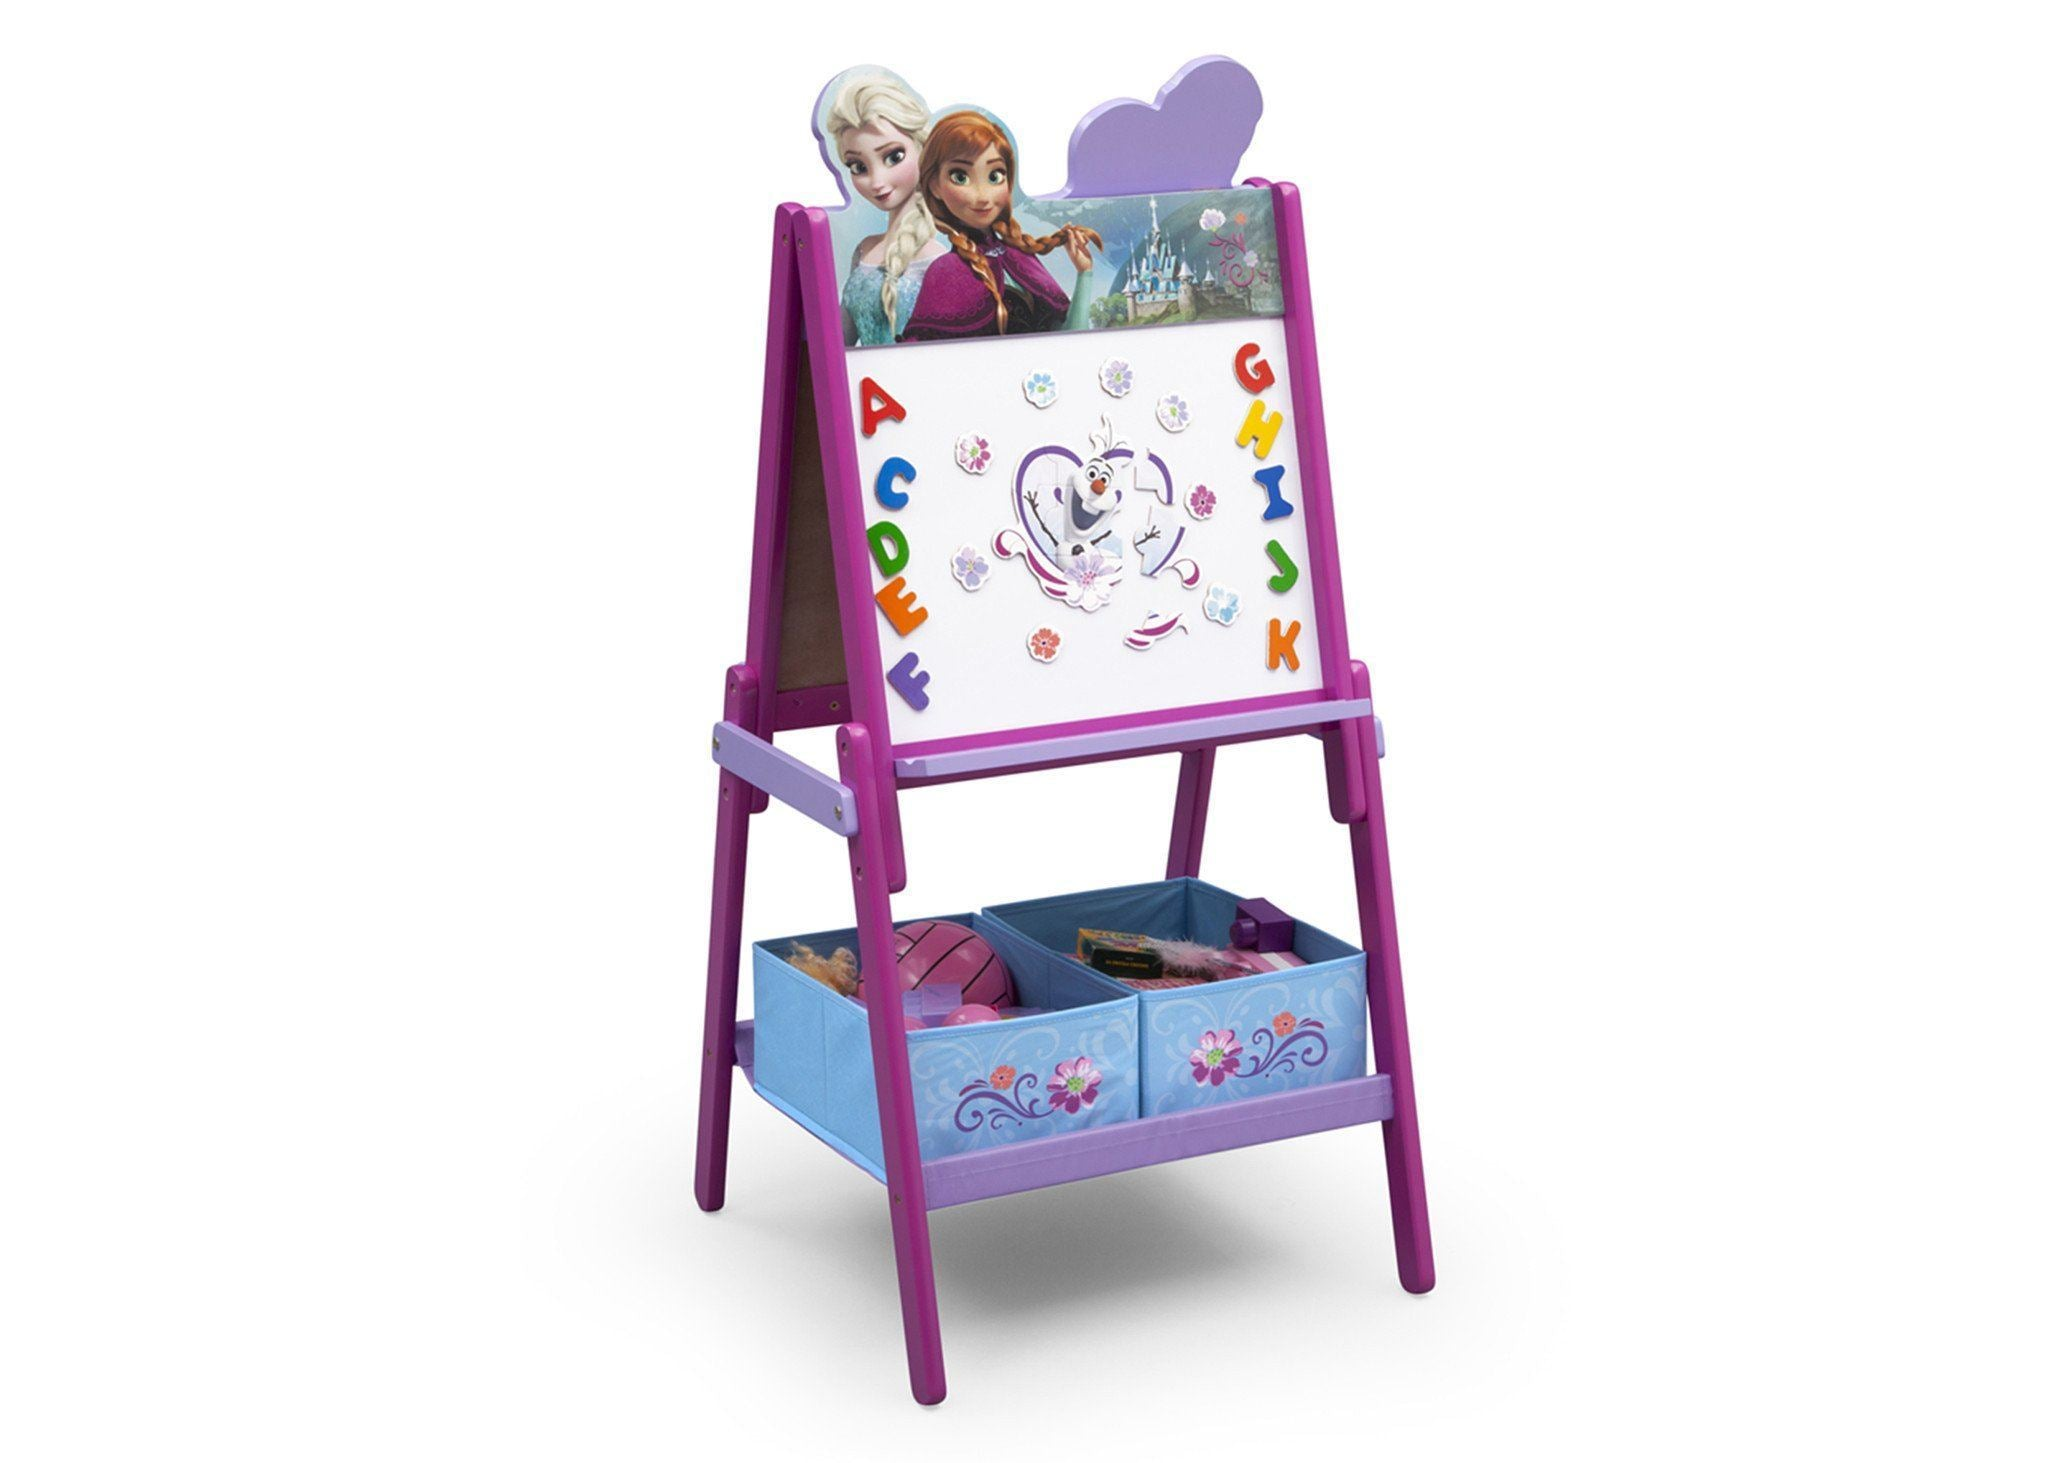 Delta Children Frozen Wooden Double Sided Activity Easel with Storage, Right View with Props a2a